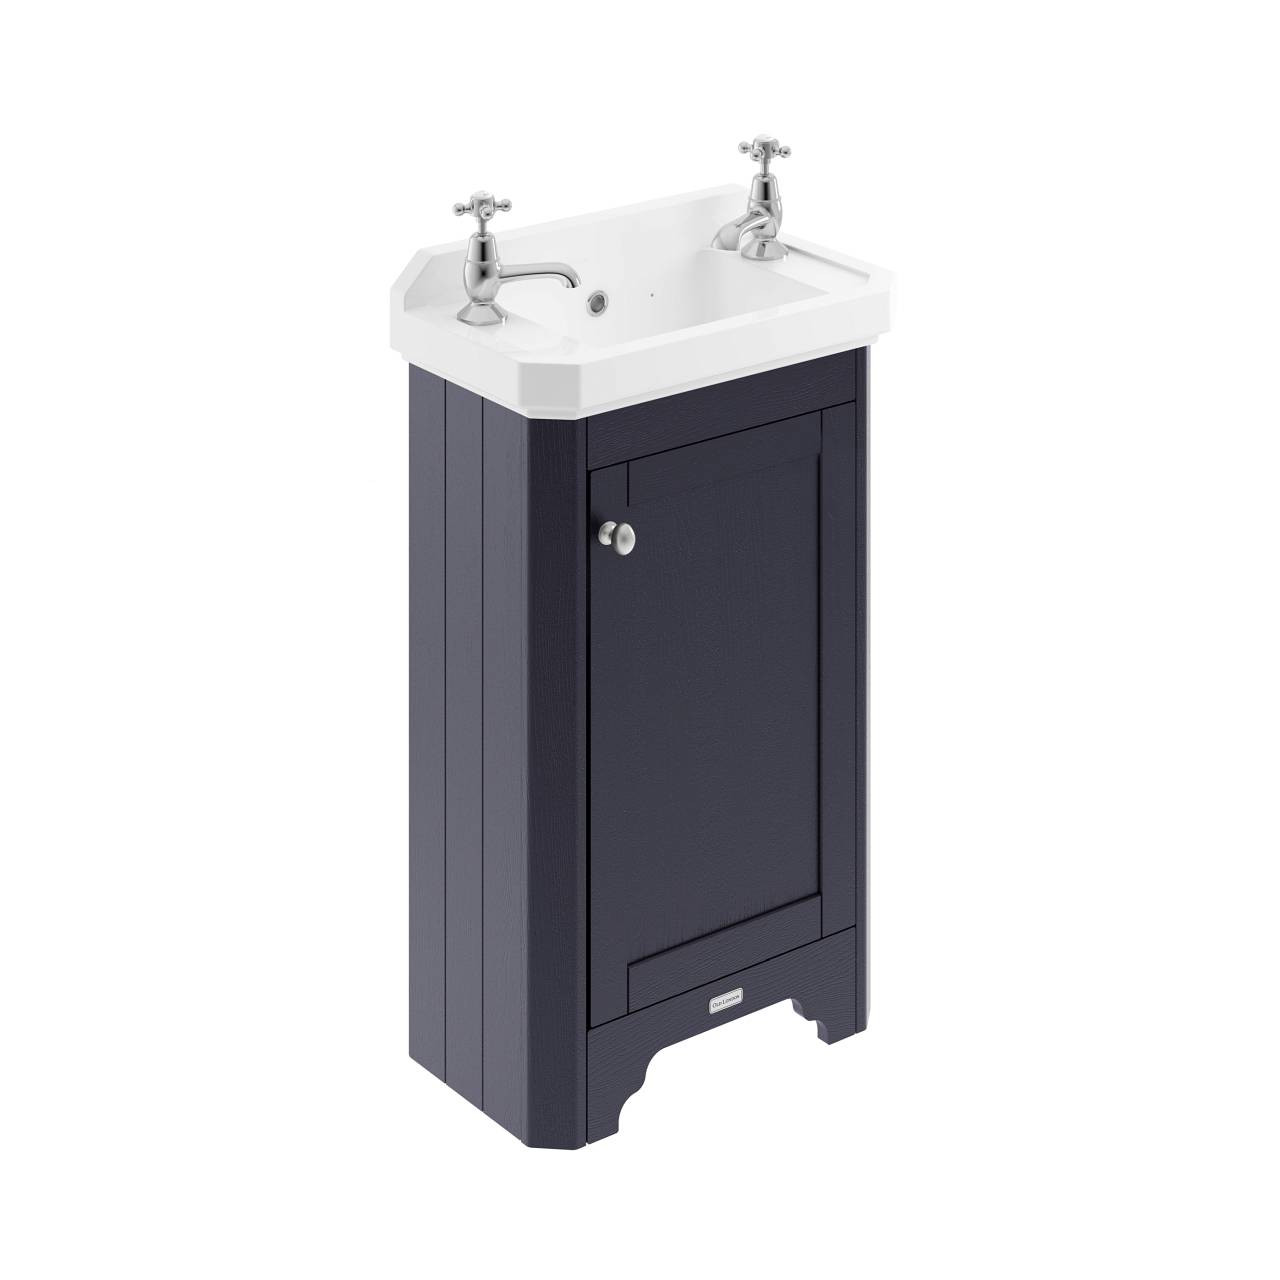 Old London Twilight Blue 515mm Single Door Vanity Unit and Basin with 2 Tap Holes - LOF369